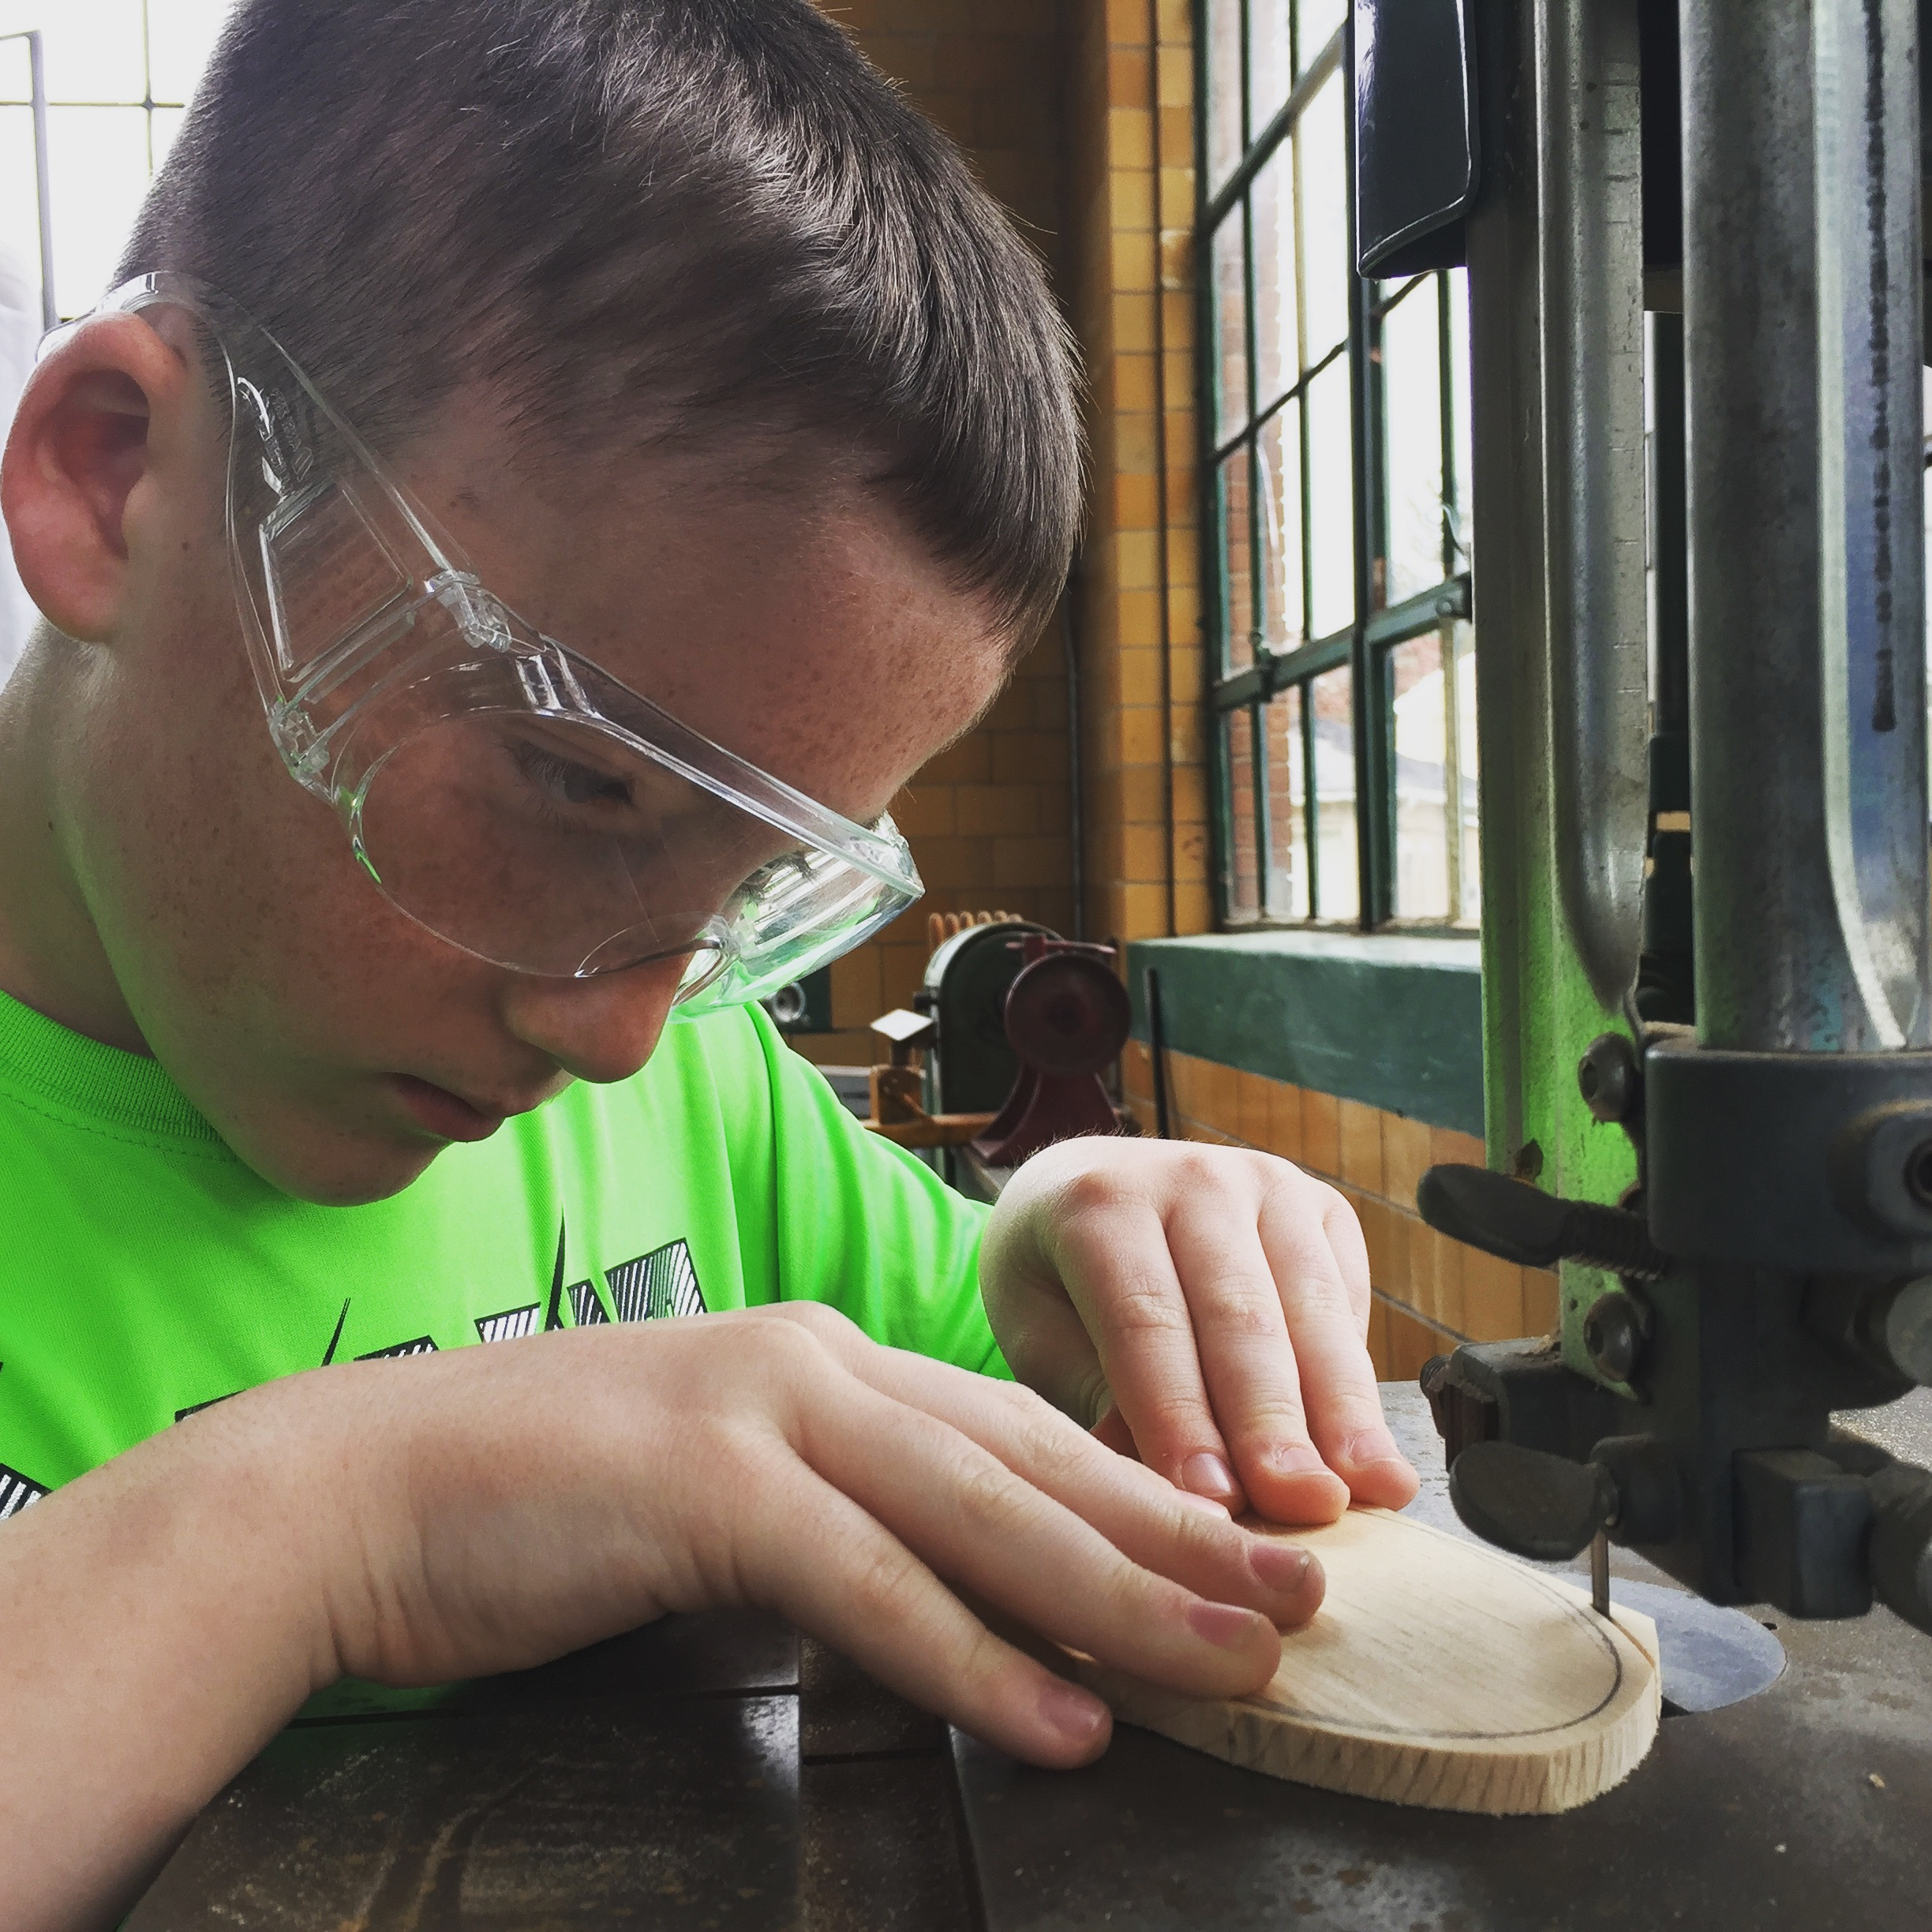 Wood shop safety certification - STEM learning